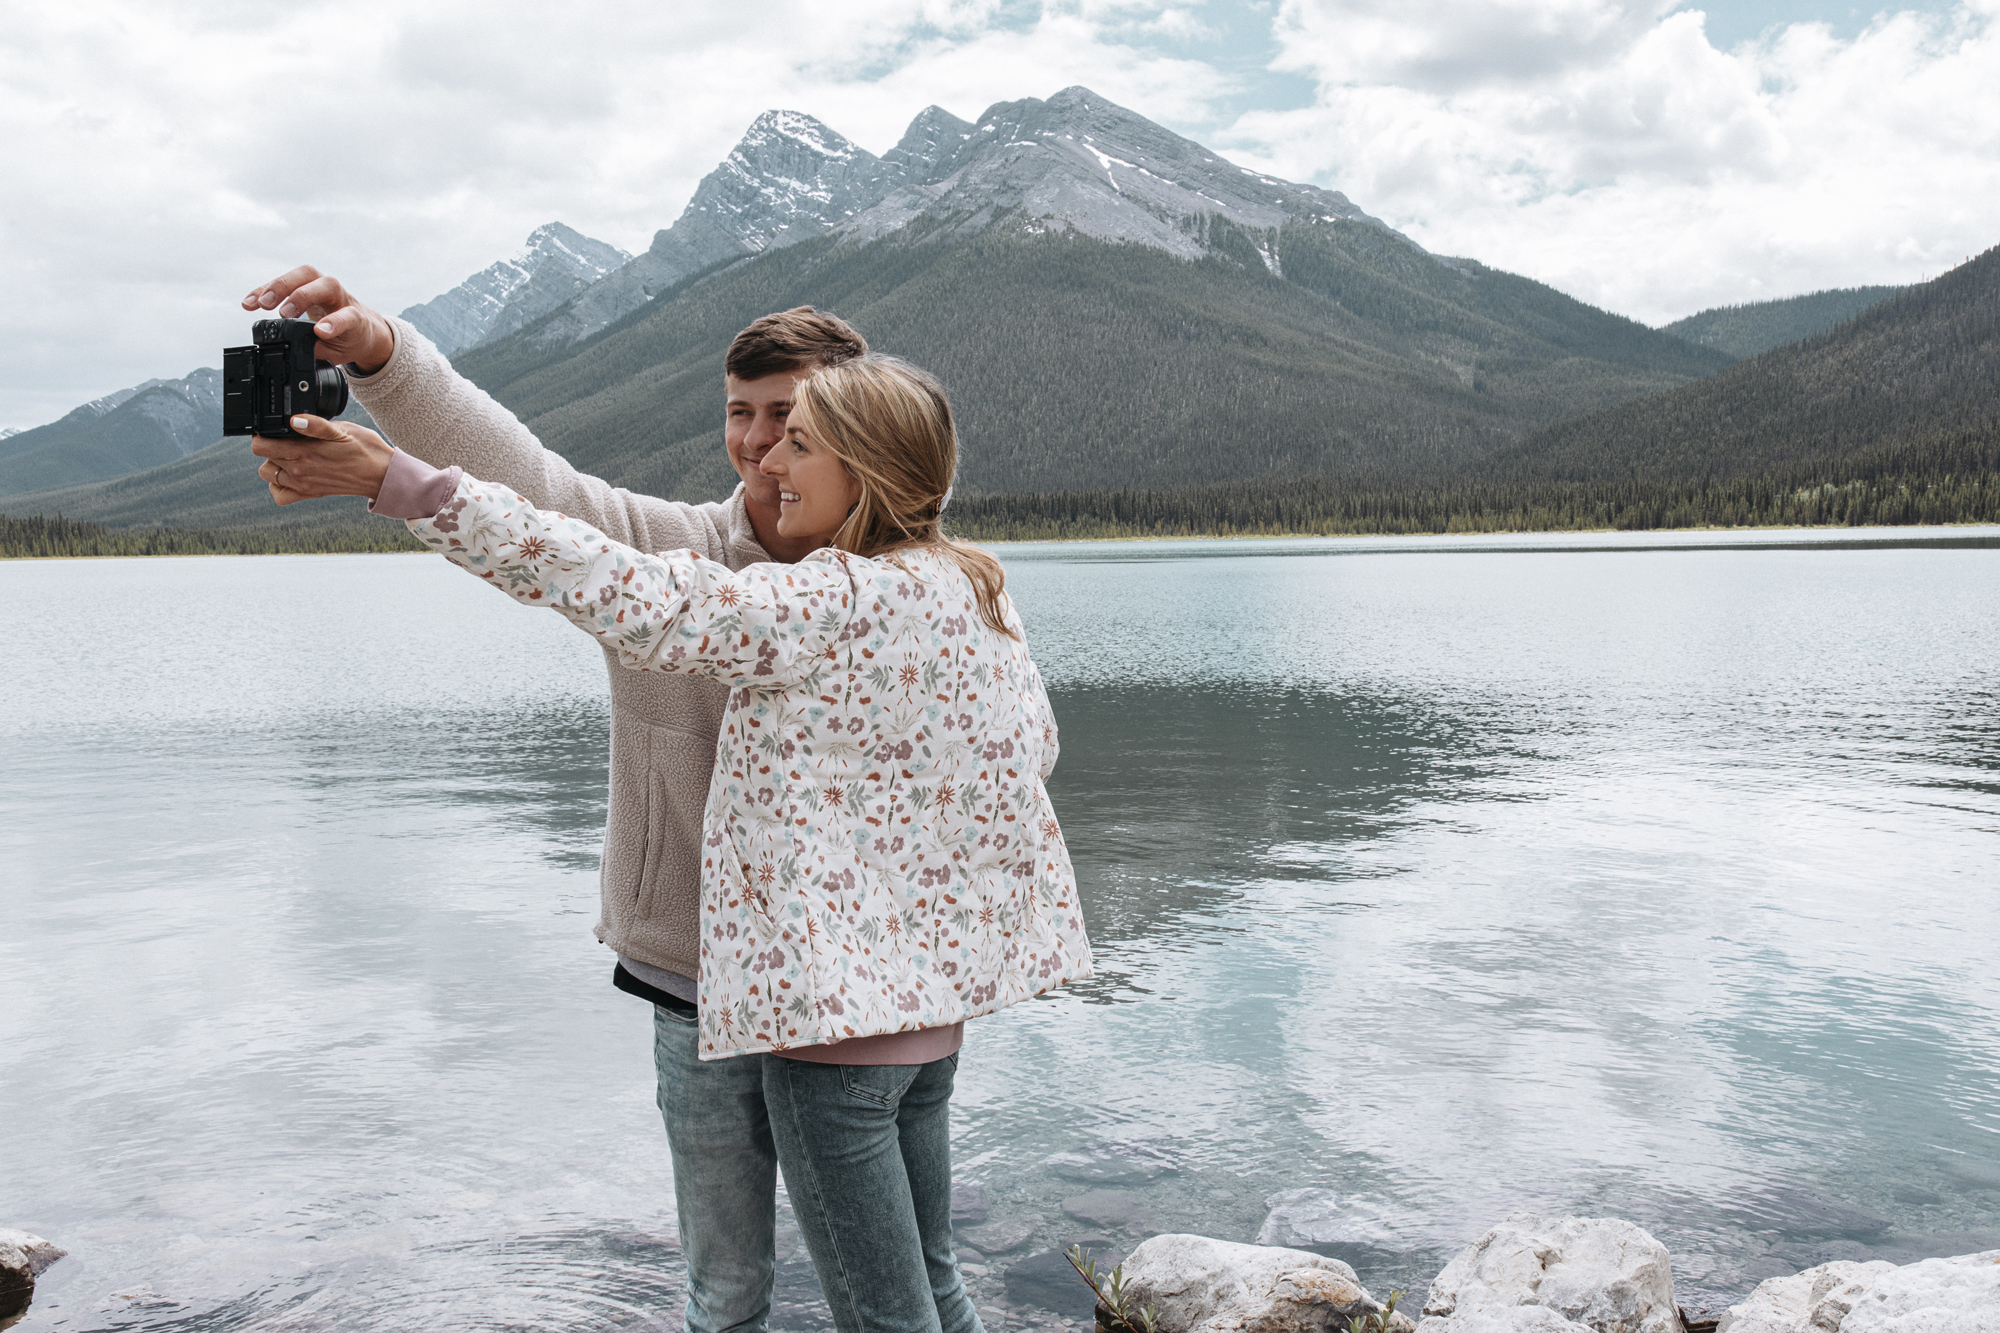 Banff travel guide from creative lifestyle blogger emily r hess. Visit park distillery and rocky mountain bagels and Lake Louise on your trip!